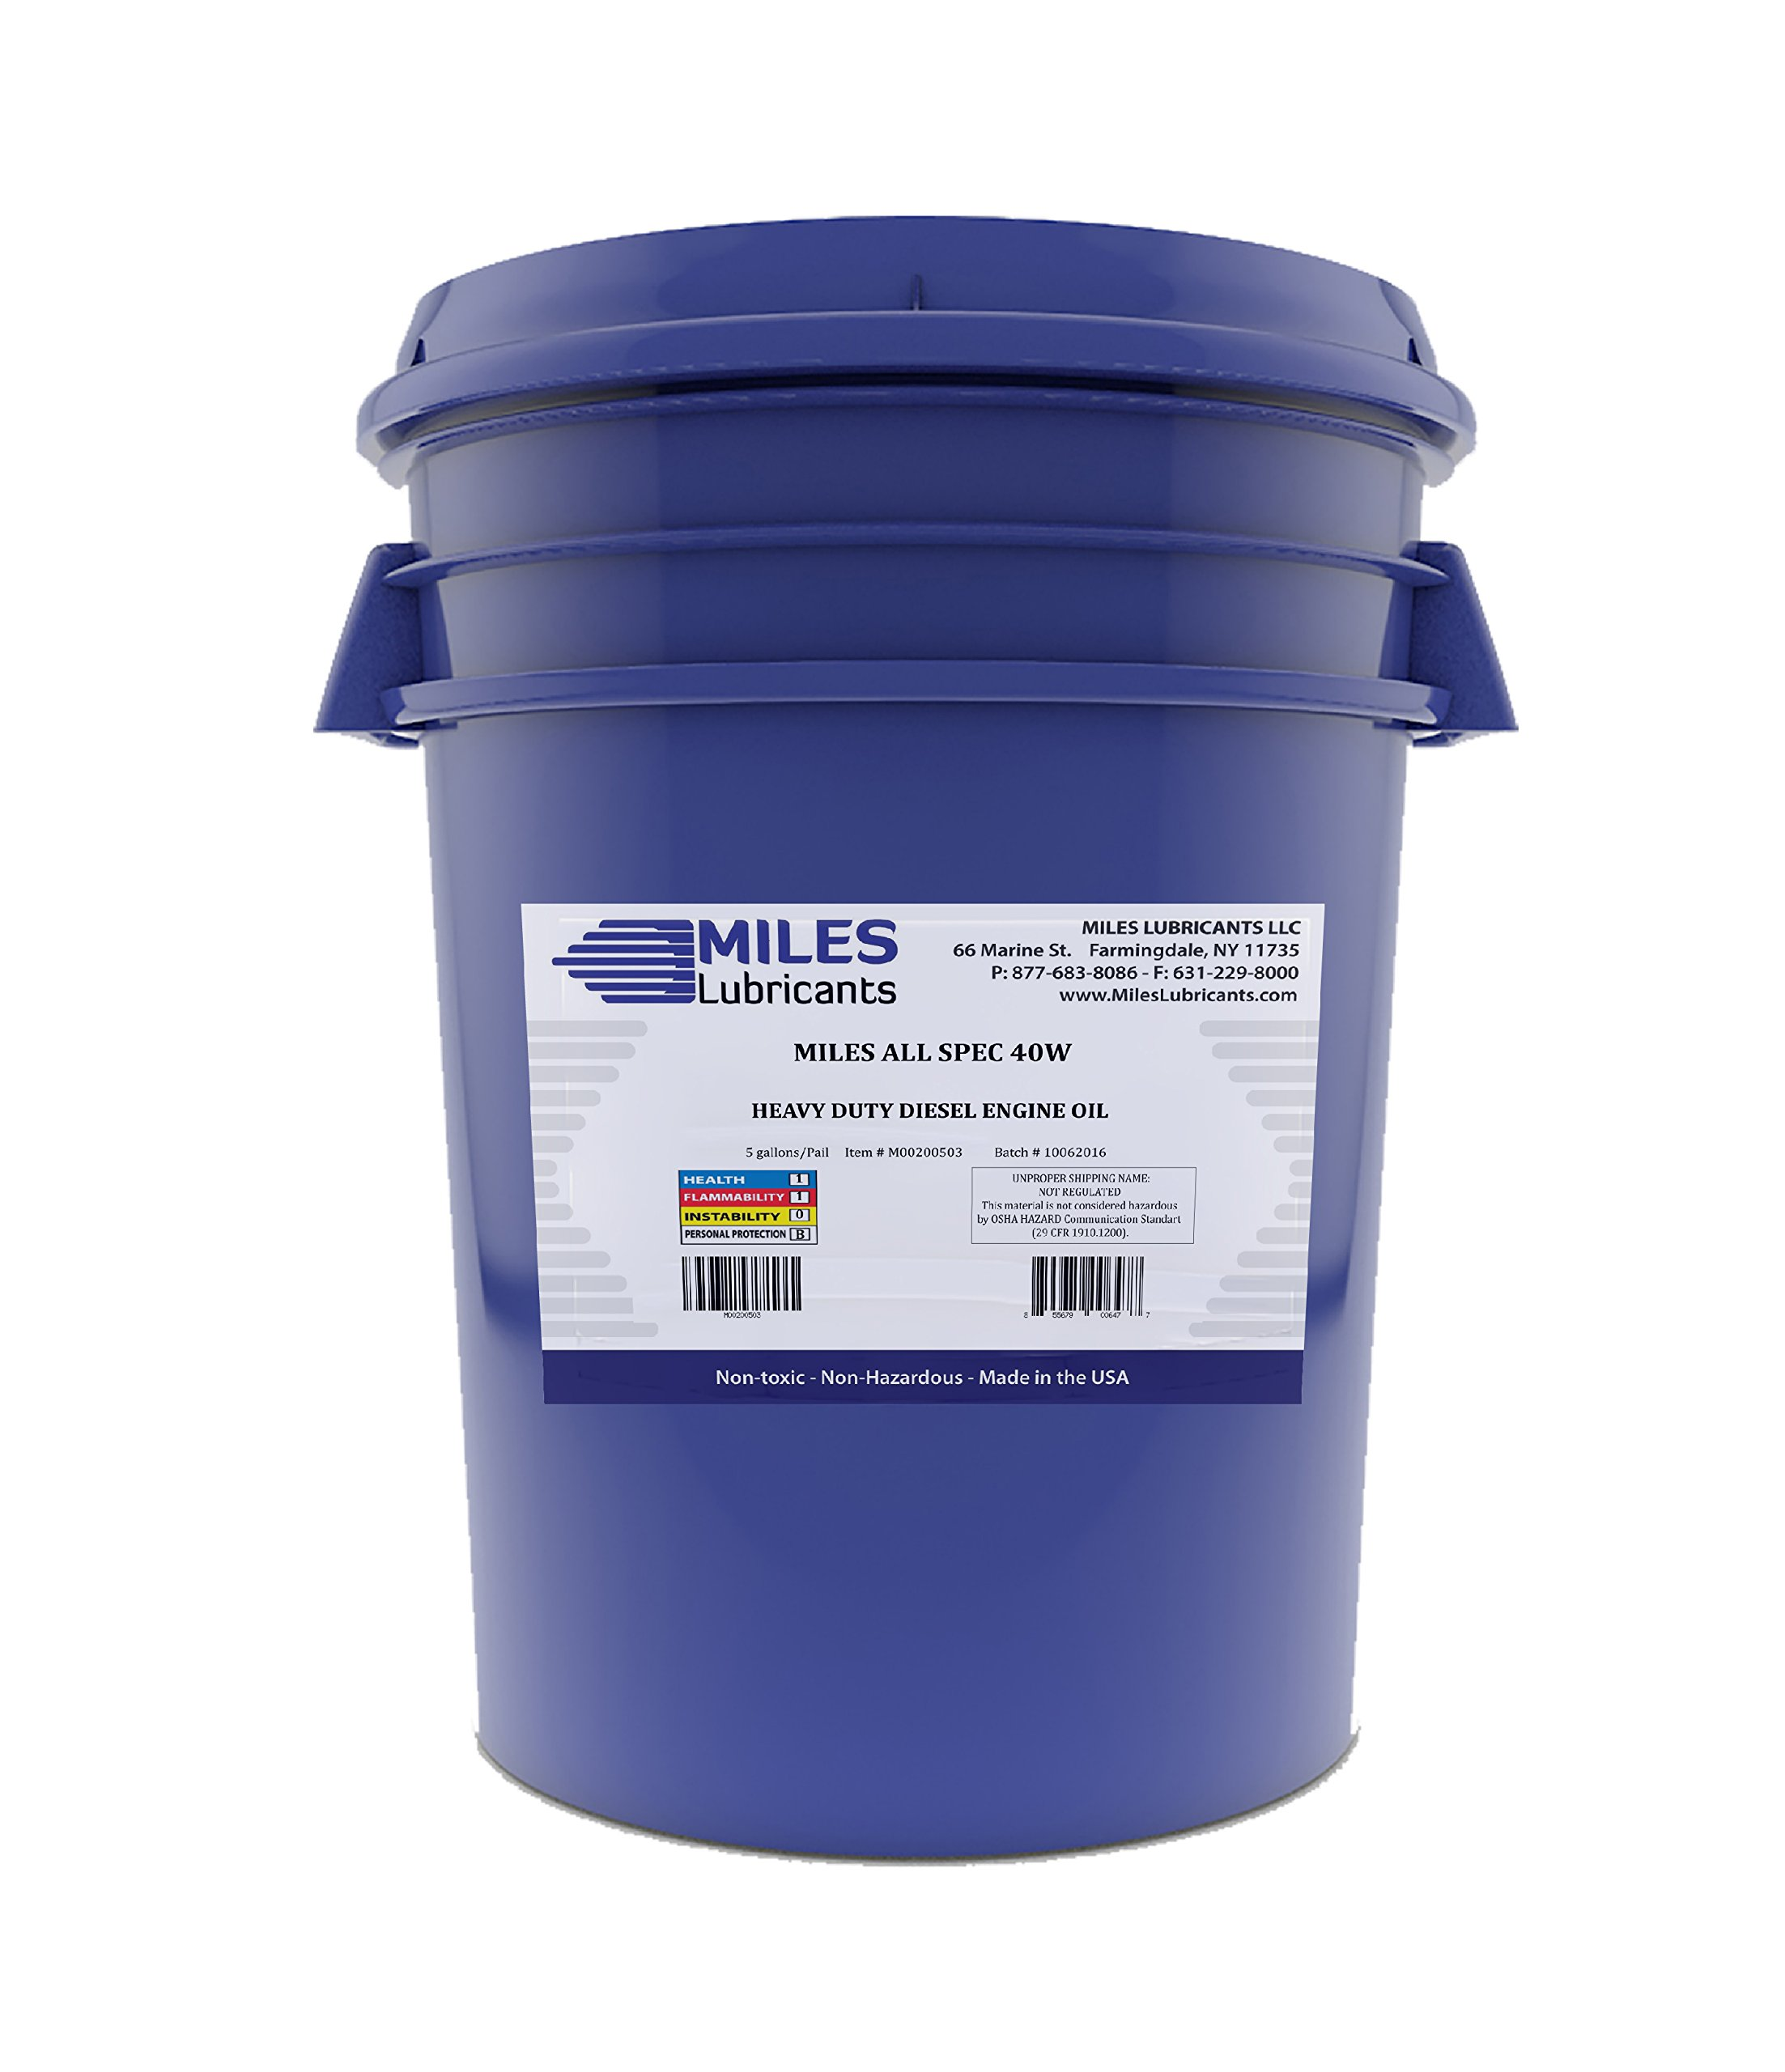 Miles All Spec 40W Heavy Duty Diesel Motor Oil 40W 5 Gallon Pail